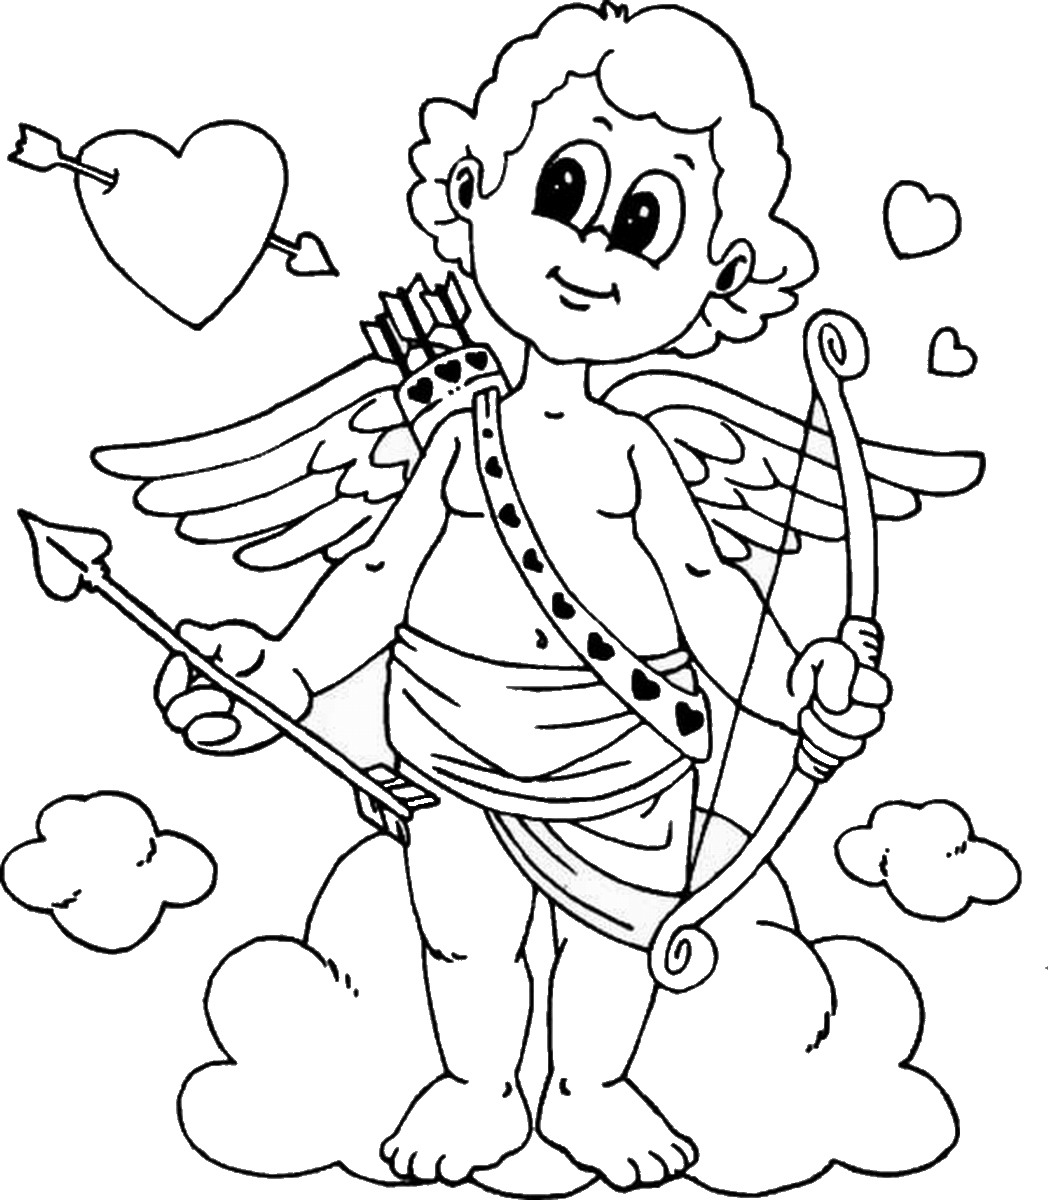 free printable valentine coloring pages party simplicity free valentines day coloring pages and coloring pages valentine printable free